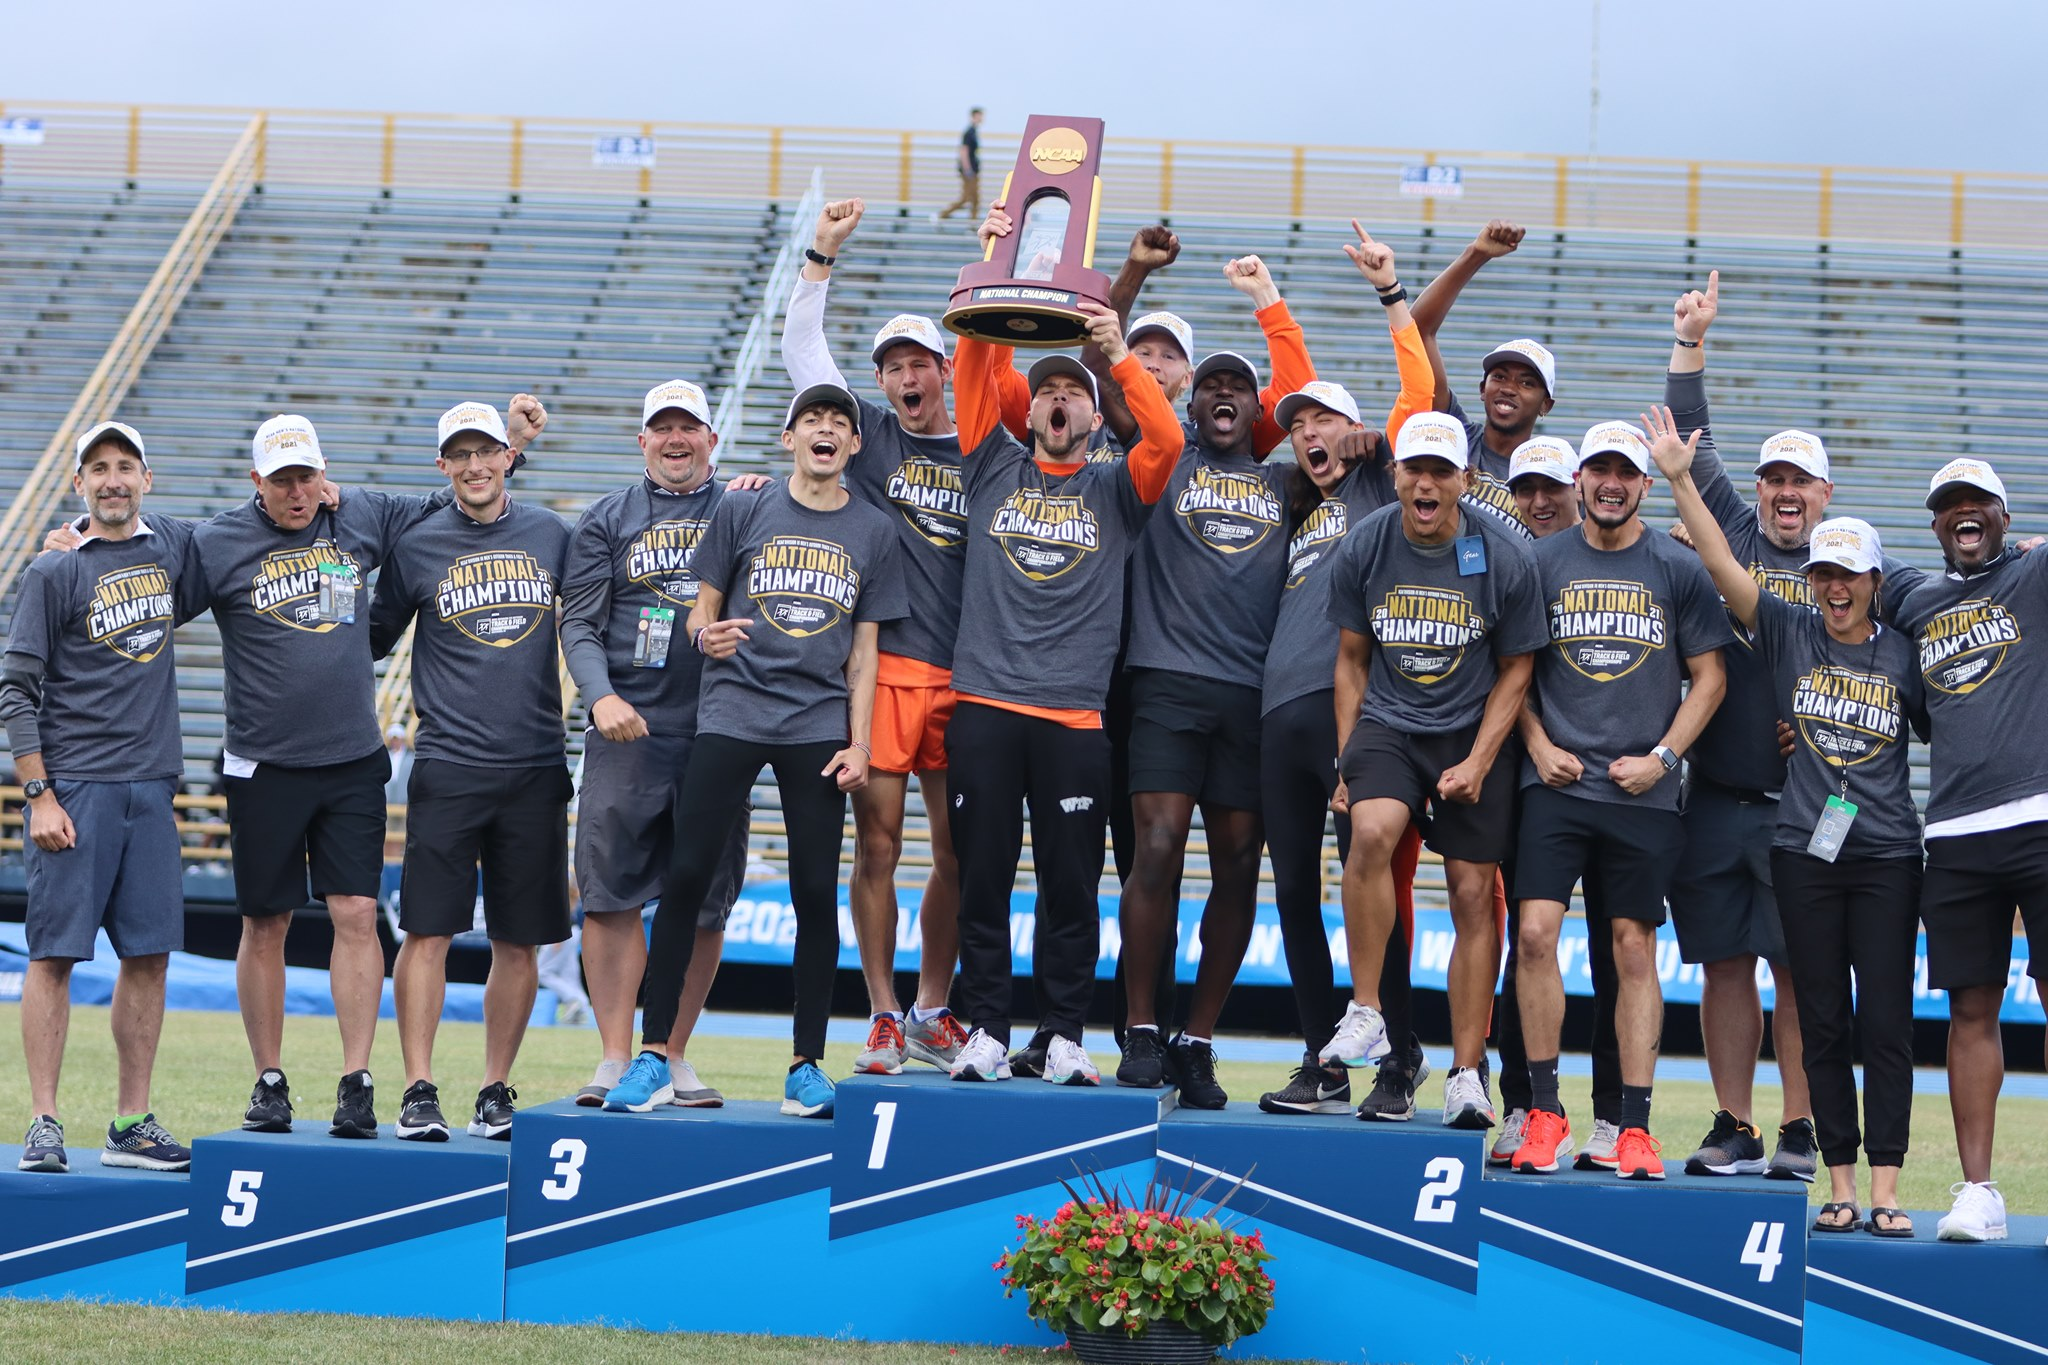 Wartburg men's track and field team wins Outdoor National Championship in 2021